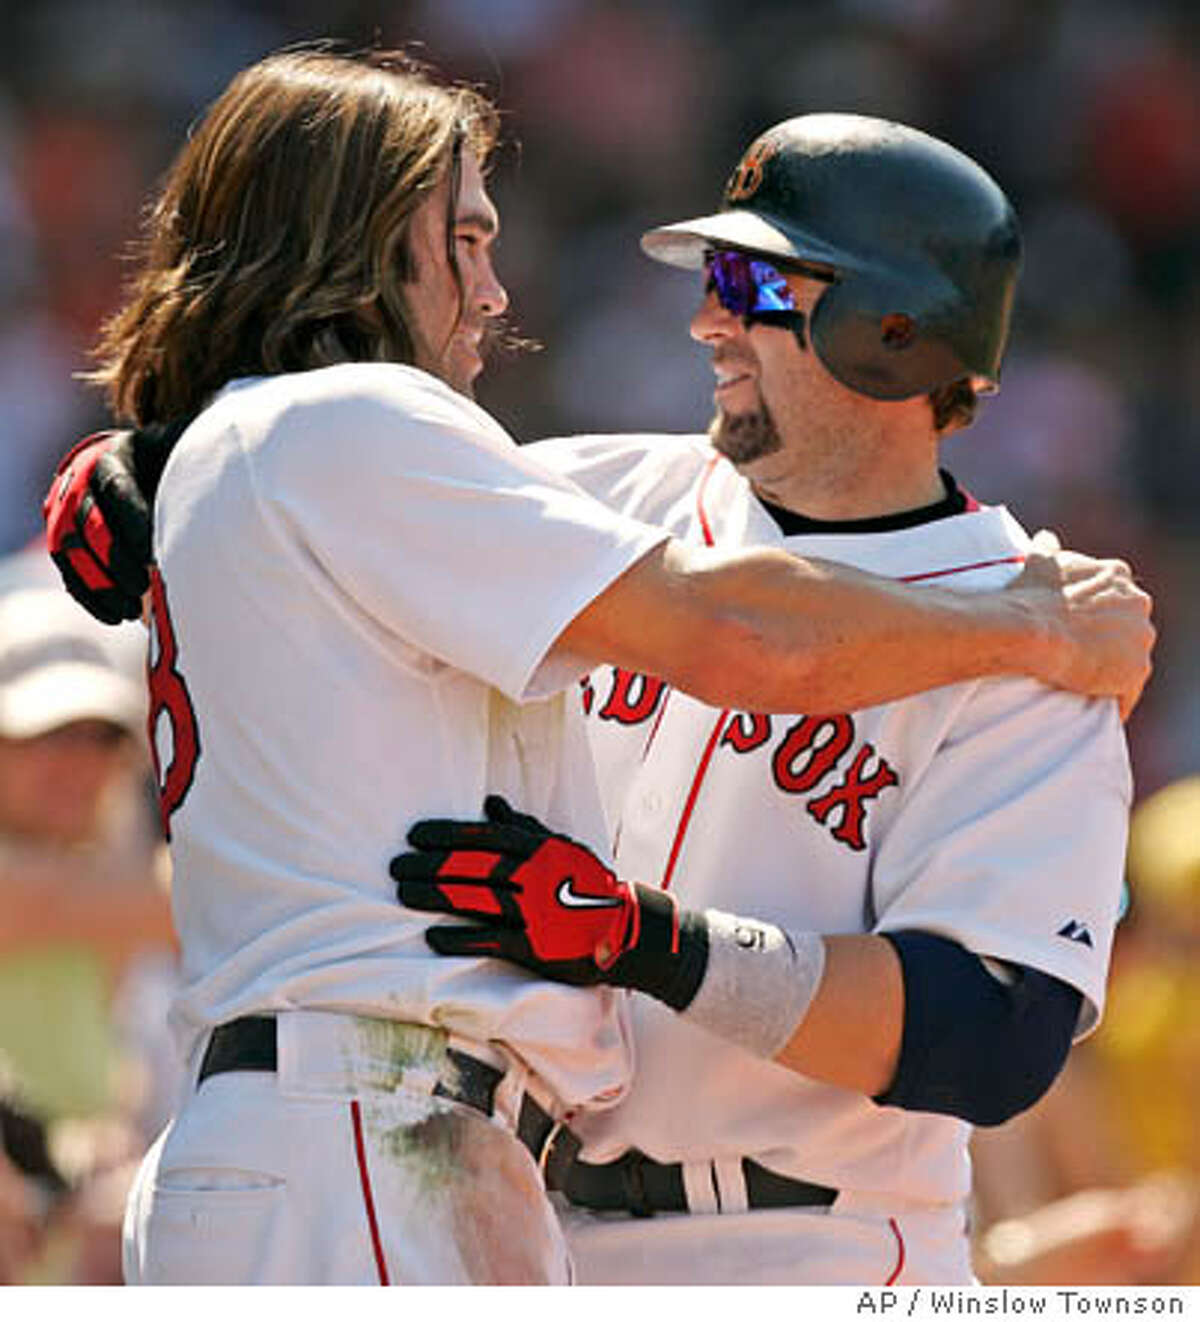 Boston Kevin Millar, right, is congratulated by teammate Johnny Damon after Millar's first of two home runs during the Los Angeles Angels of Anaheim's 13-6 win at Fenway Park in Boston Saturday, June 4, 2005. Millar had three hits and three RBI in the loss. (AP Photo/Winslow Townson)